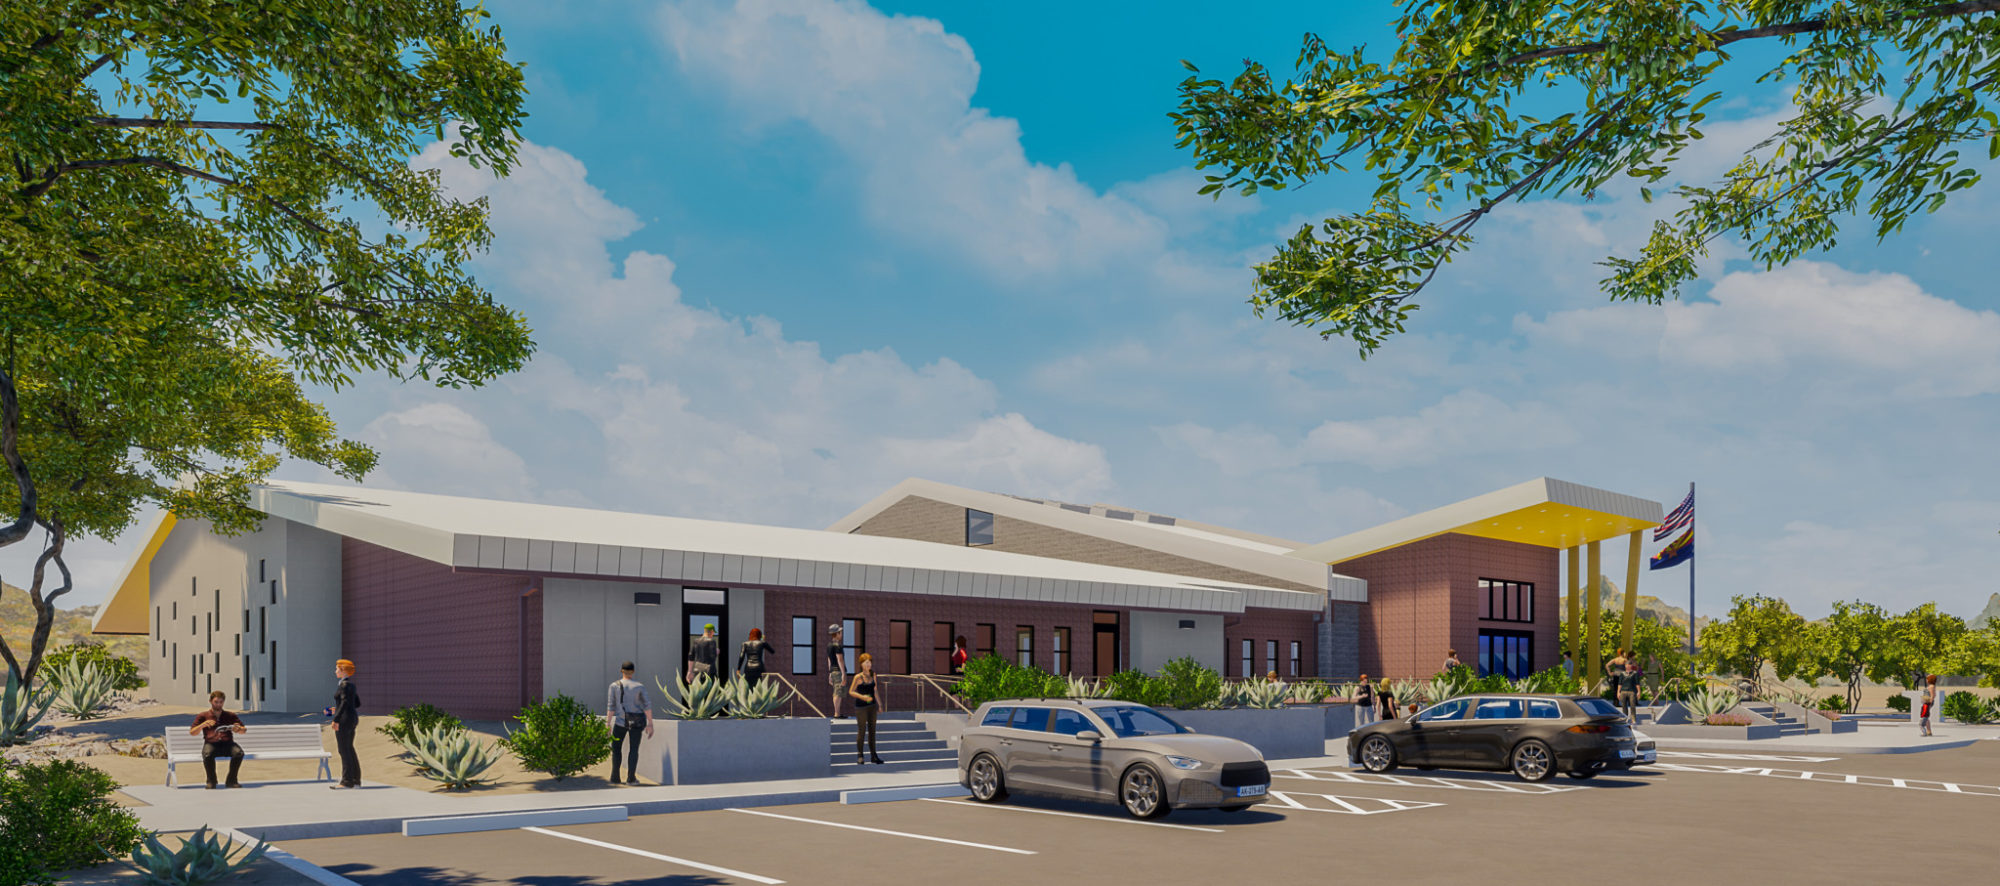 A rendering of the proposed renovation and addition of the Mohave County Library Kingman, AZ branch.